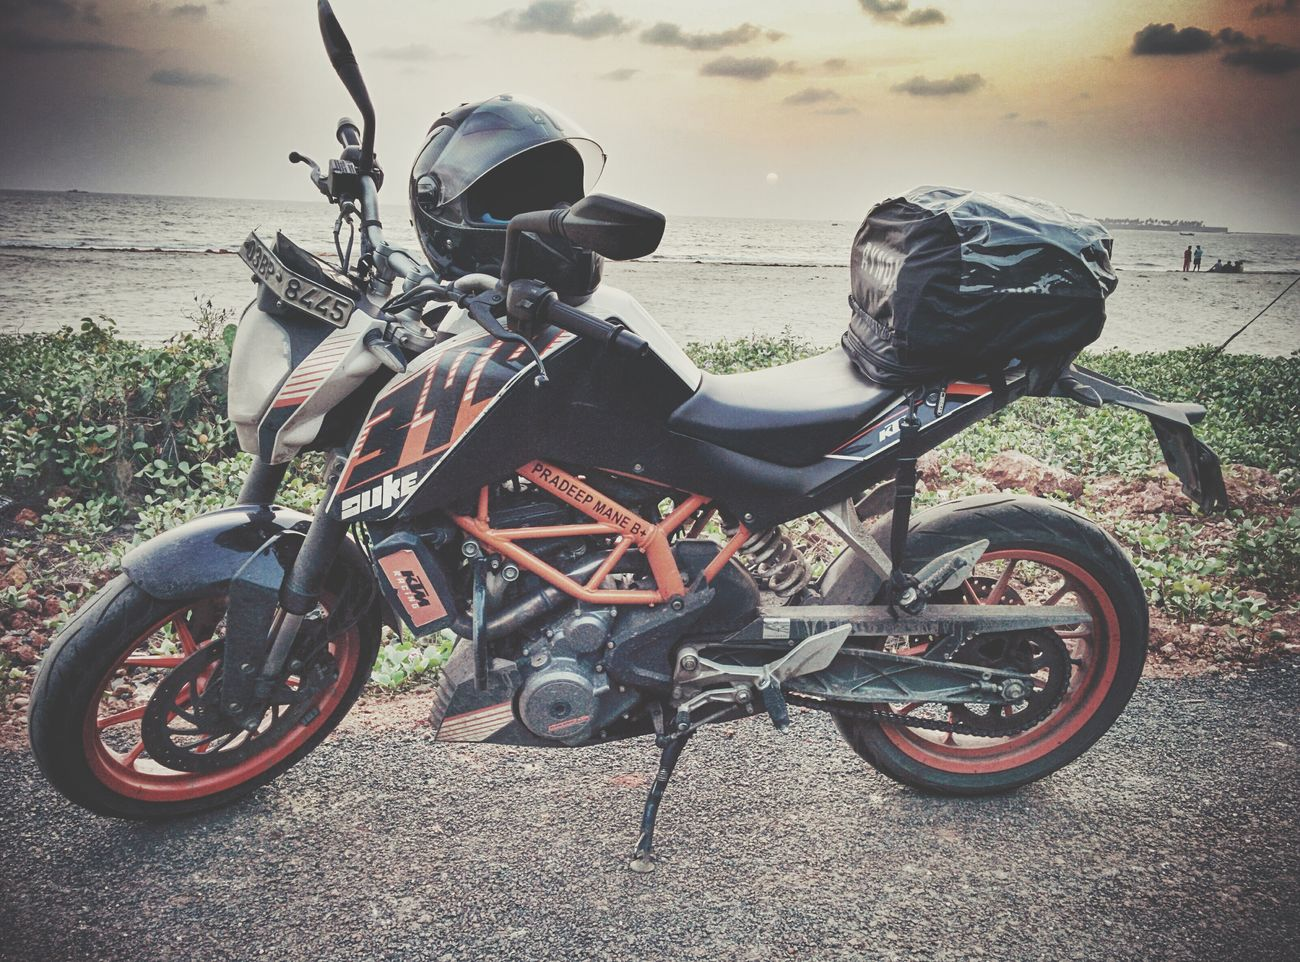 Beach Ktm Duke390 Sunset Bike Ride